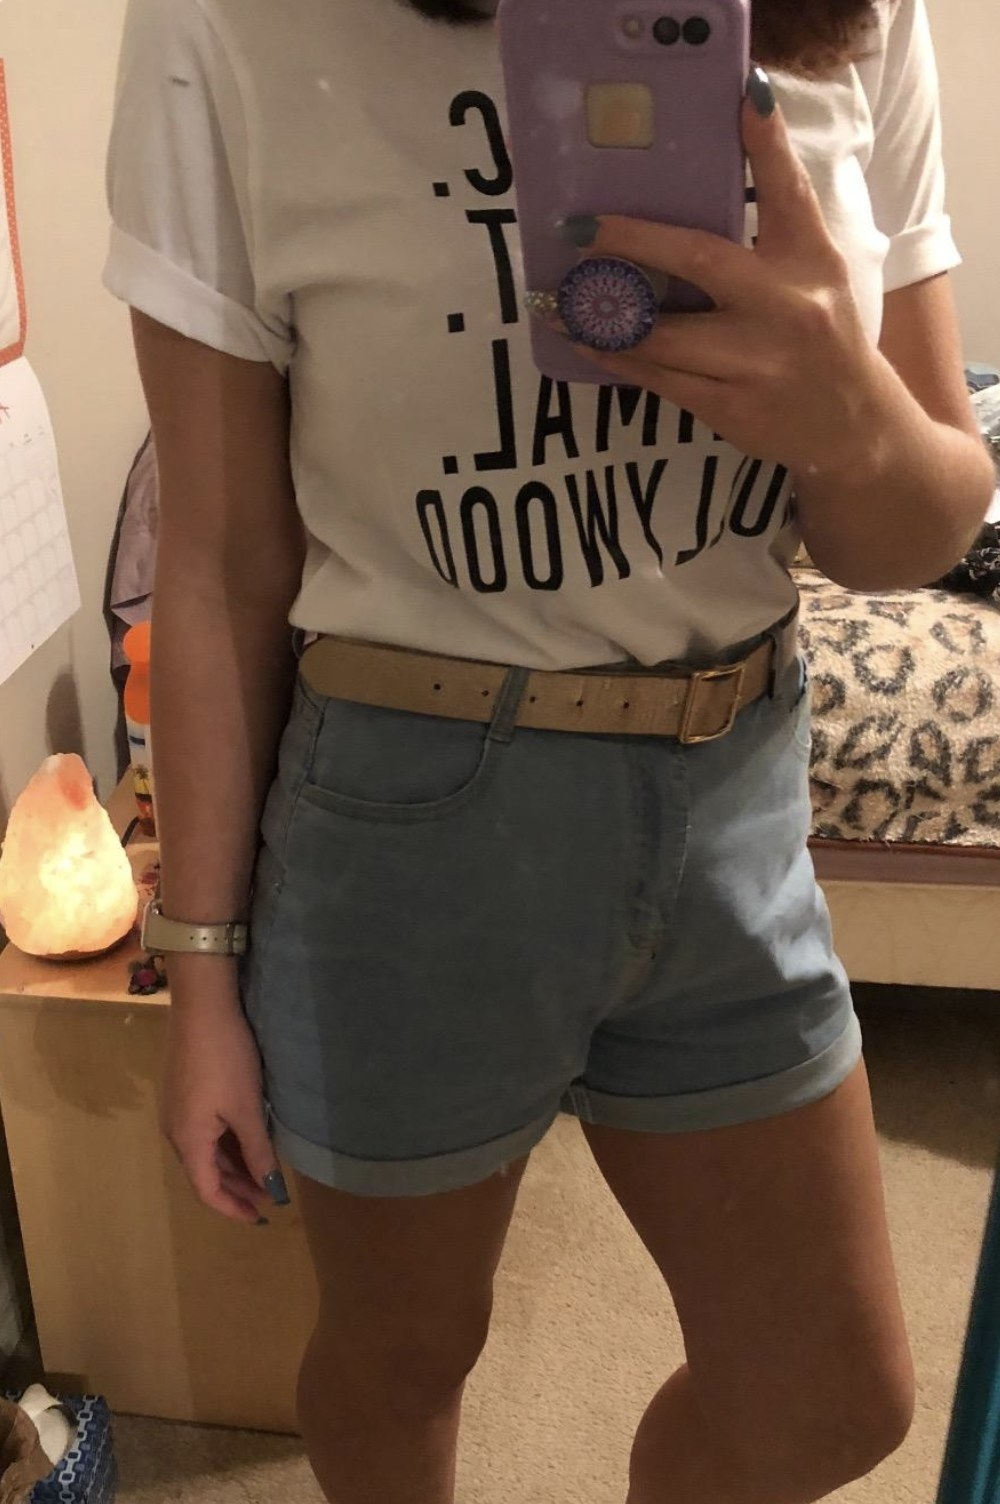 a person wearing a pair of high waisted jean shorts with a t-shirt tucked in